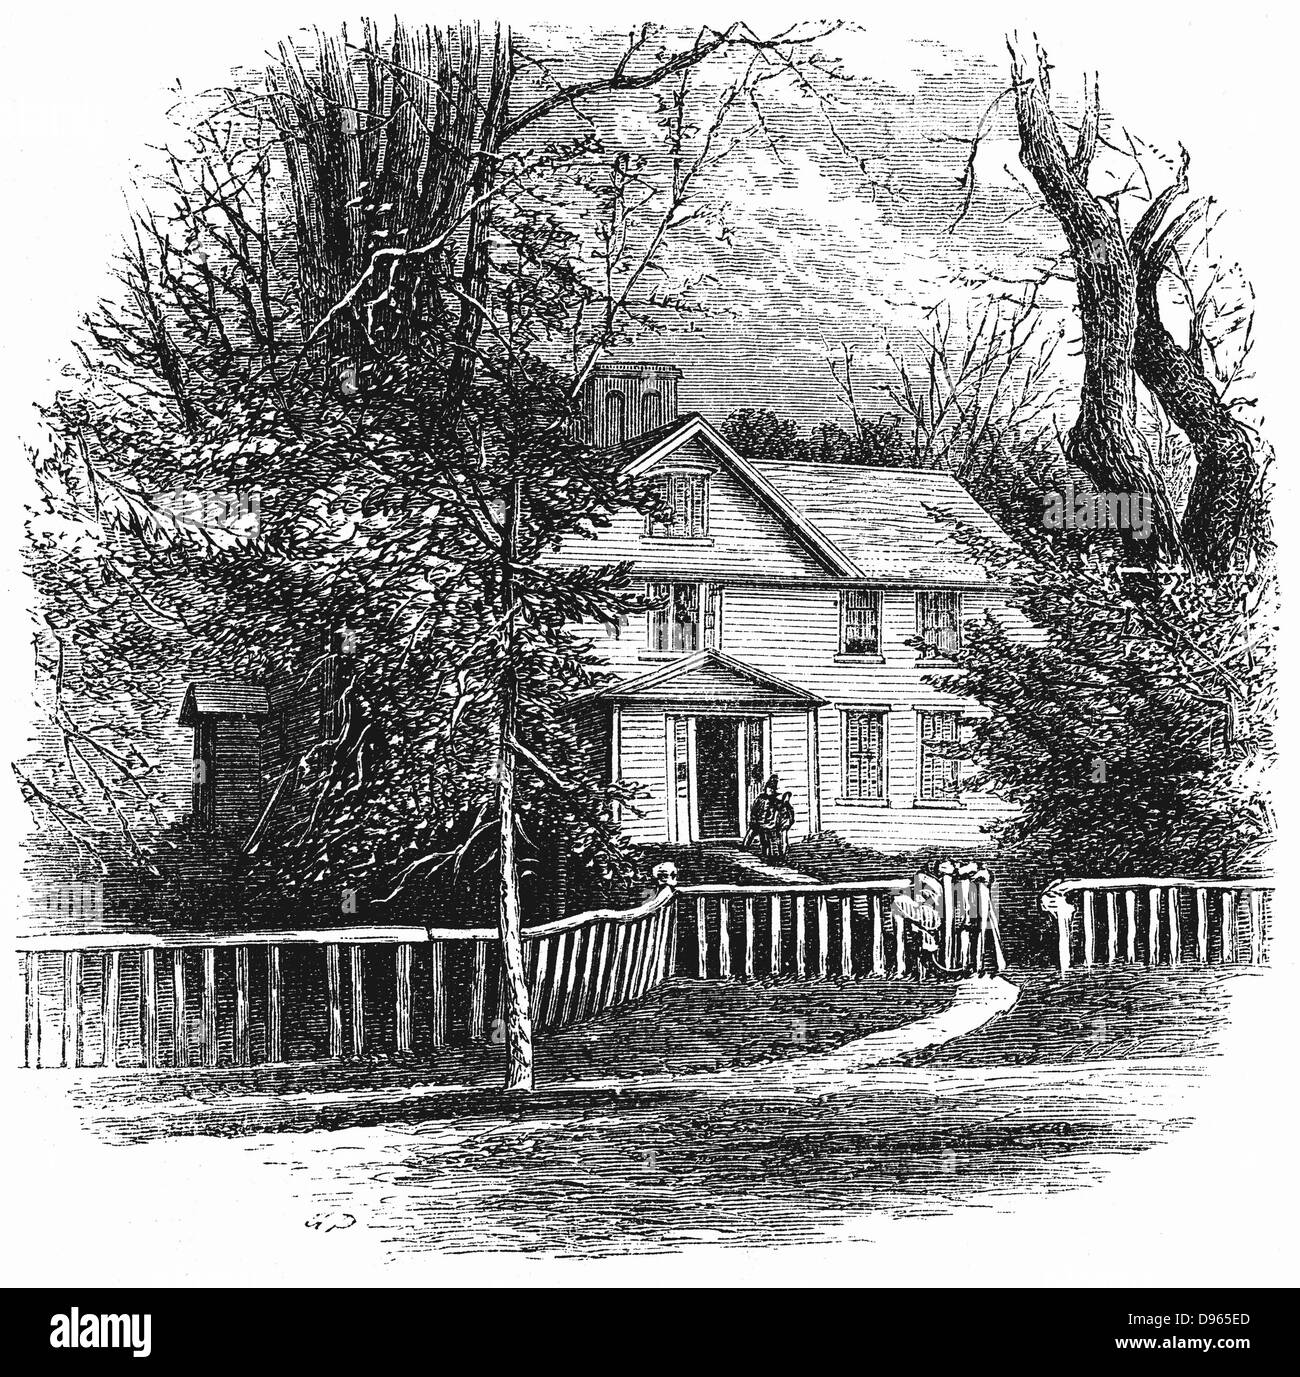 The home of Amos Benson Alcott (1799-1888) and his family, including Louisa May Alcott,  at Concord, Massachusetts. - Stock Image